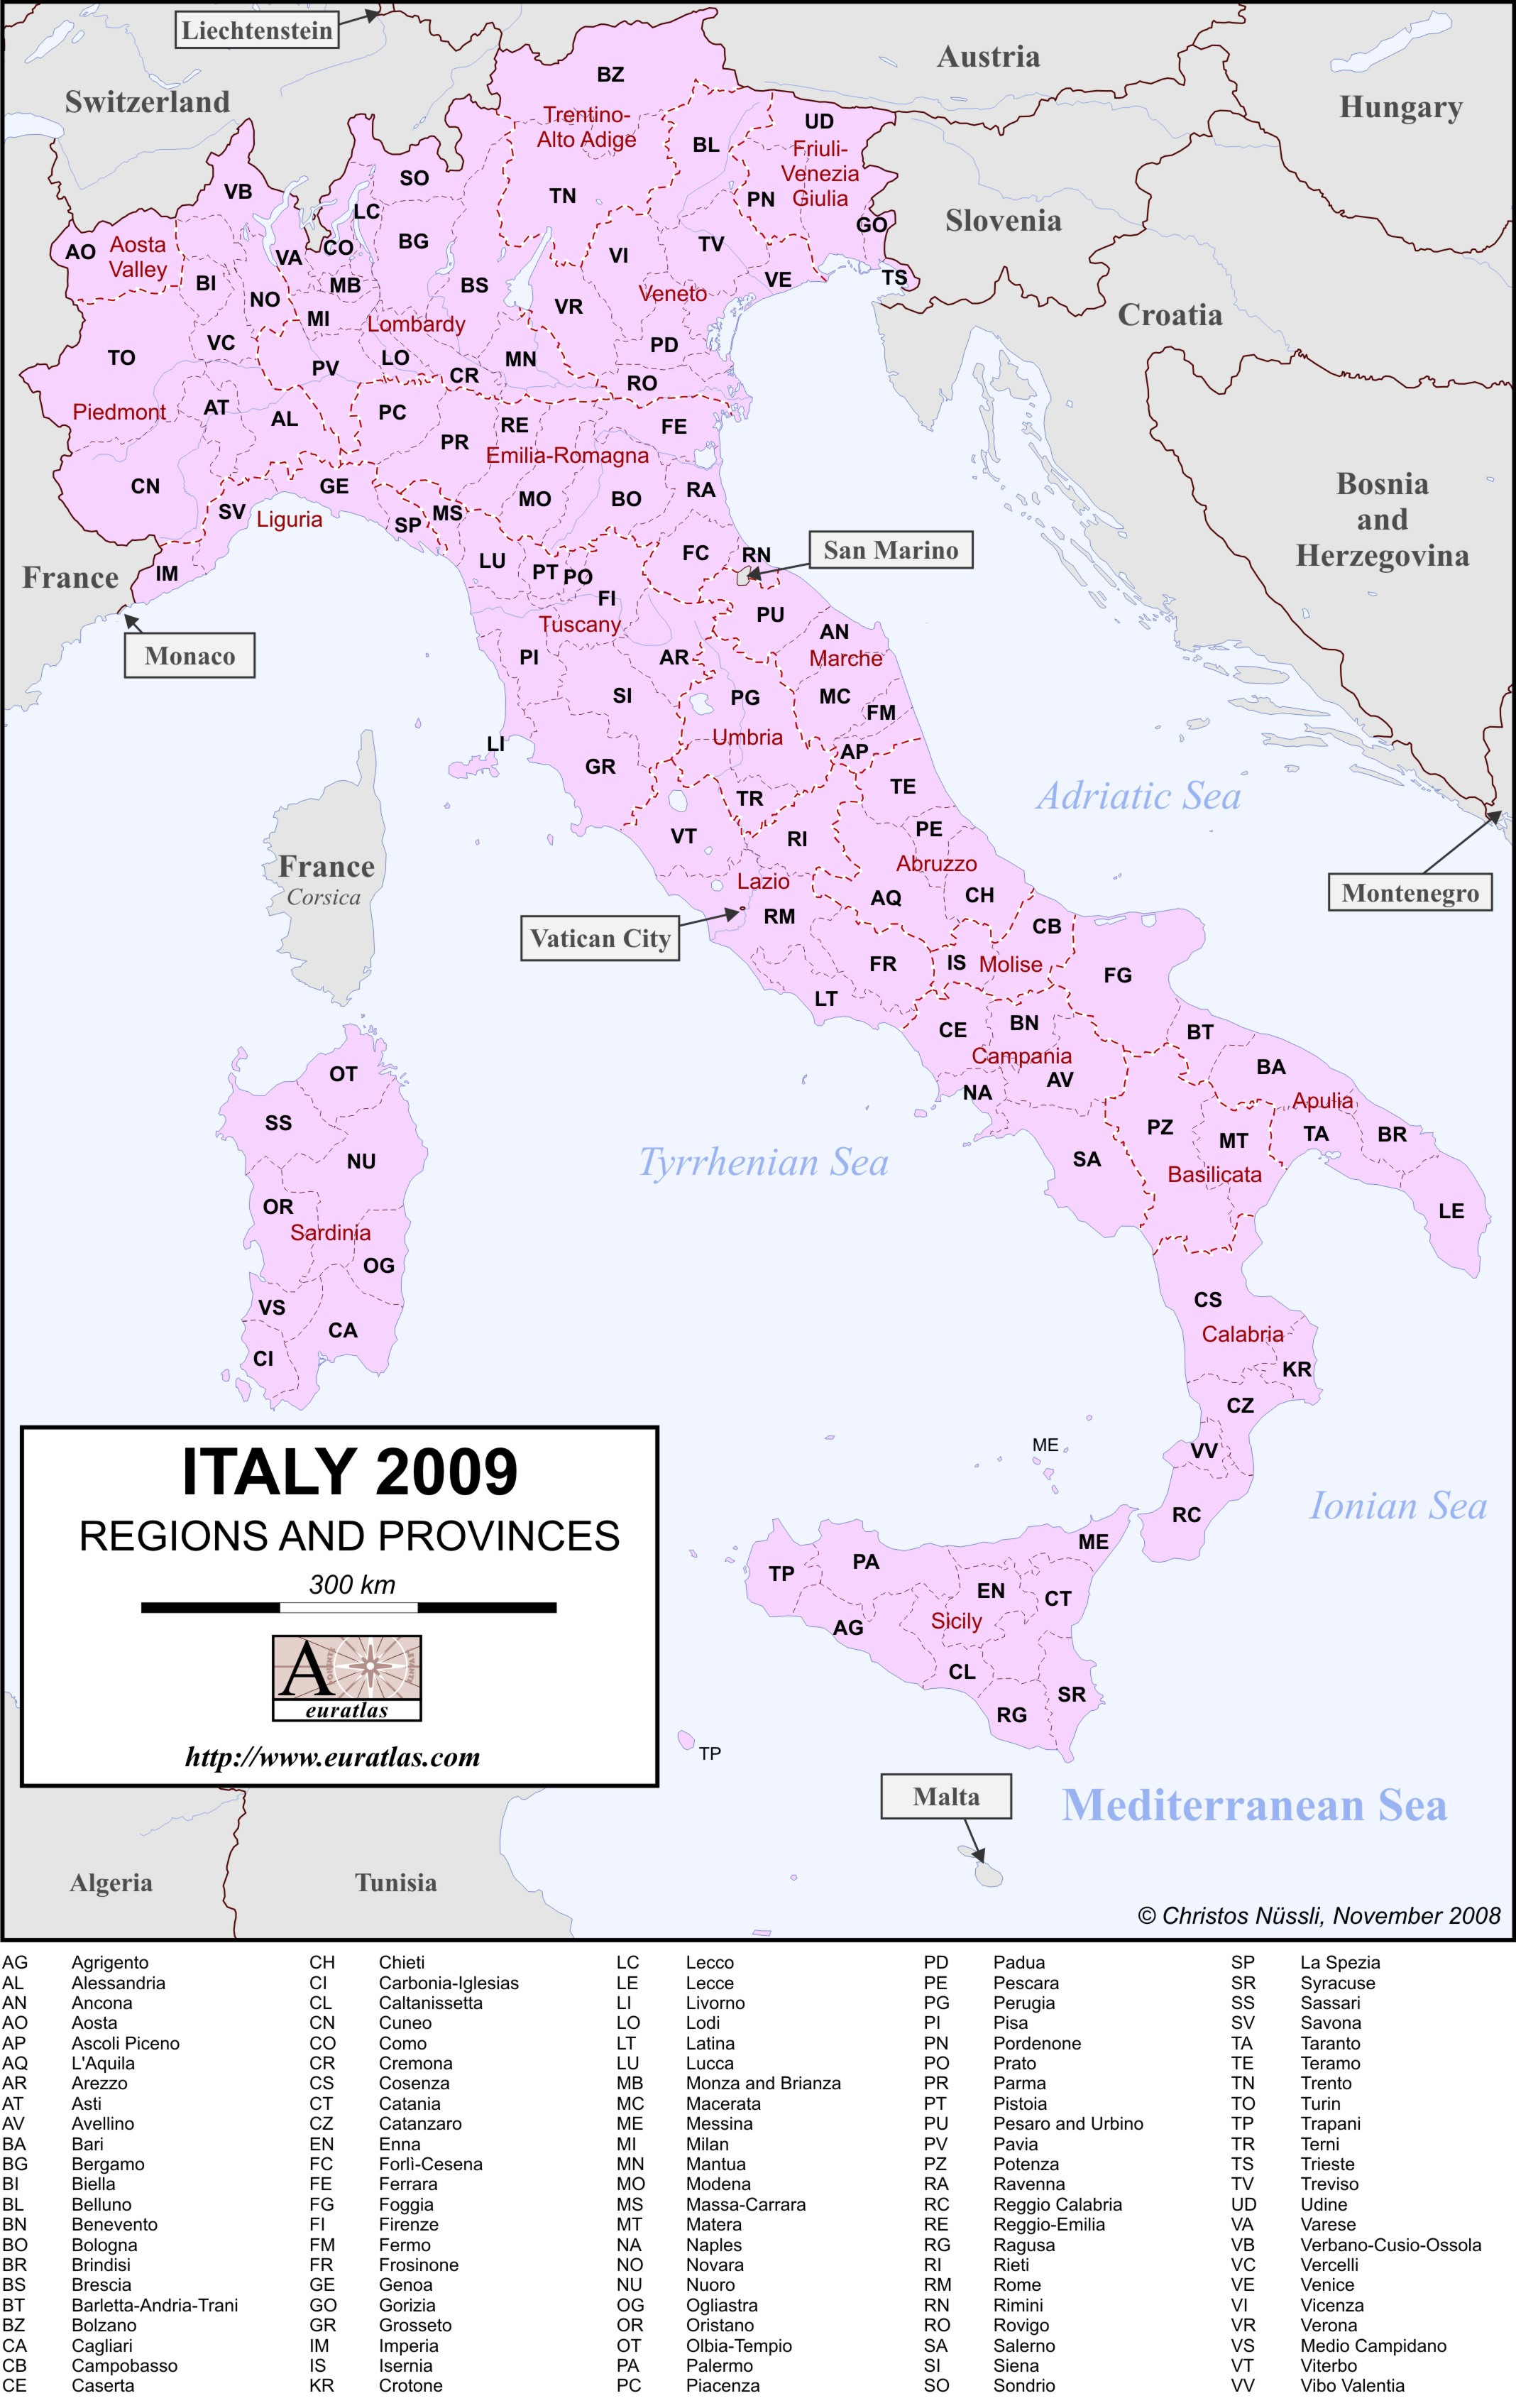 Picture of: Euratlas Info Italy 2009 With Labels In Color